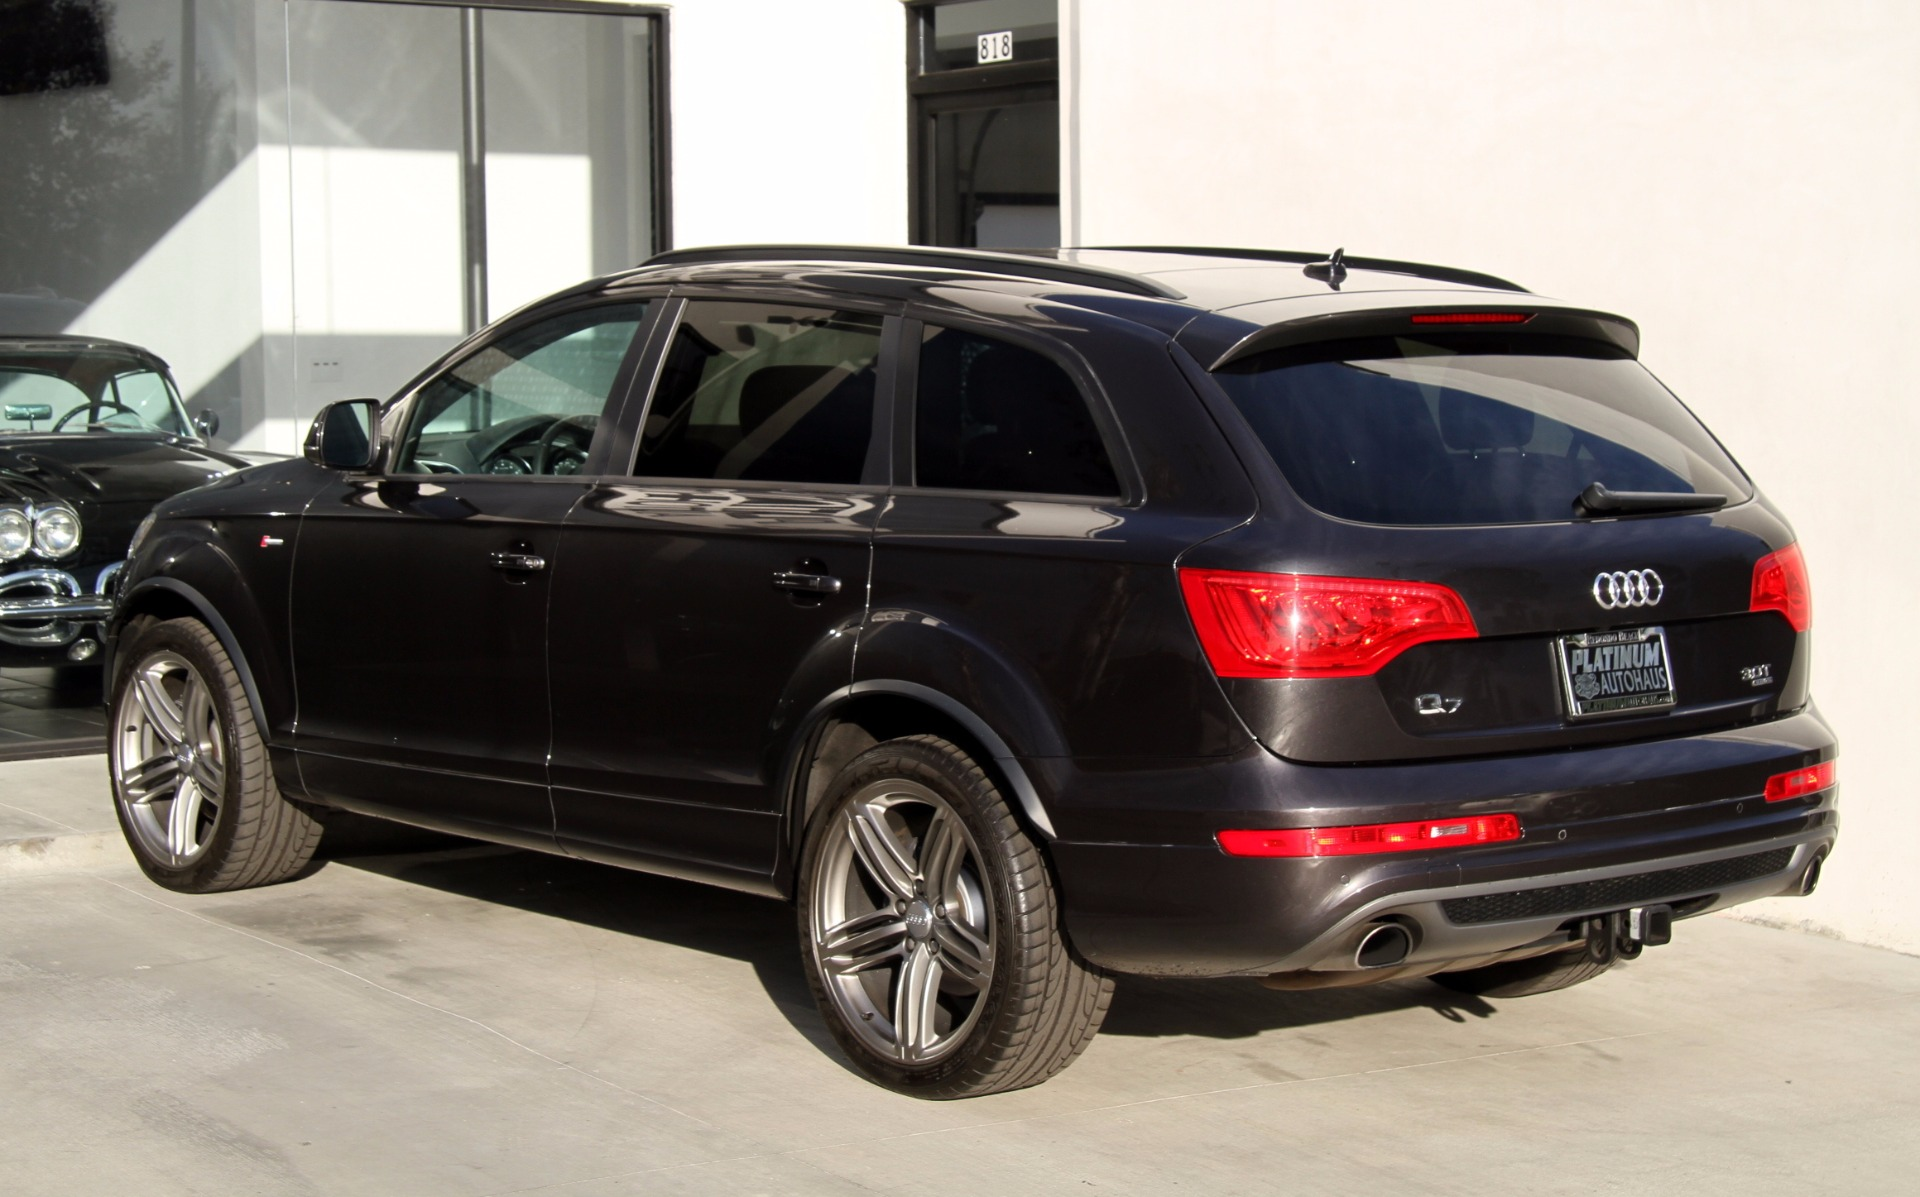 2014 audi q7 3 0t s line prestige stock 6010 for sale for General motors dealers near me